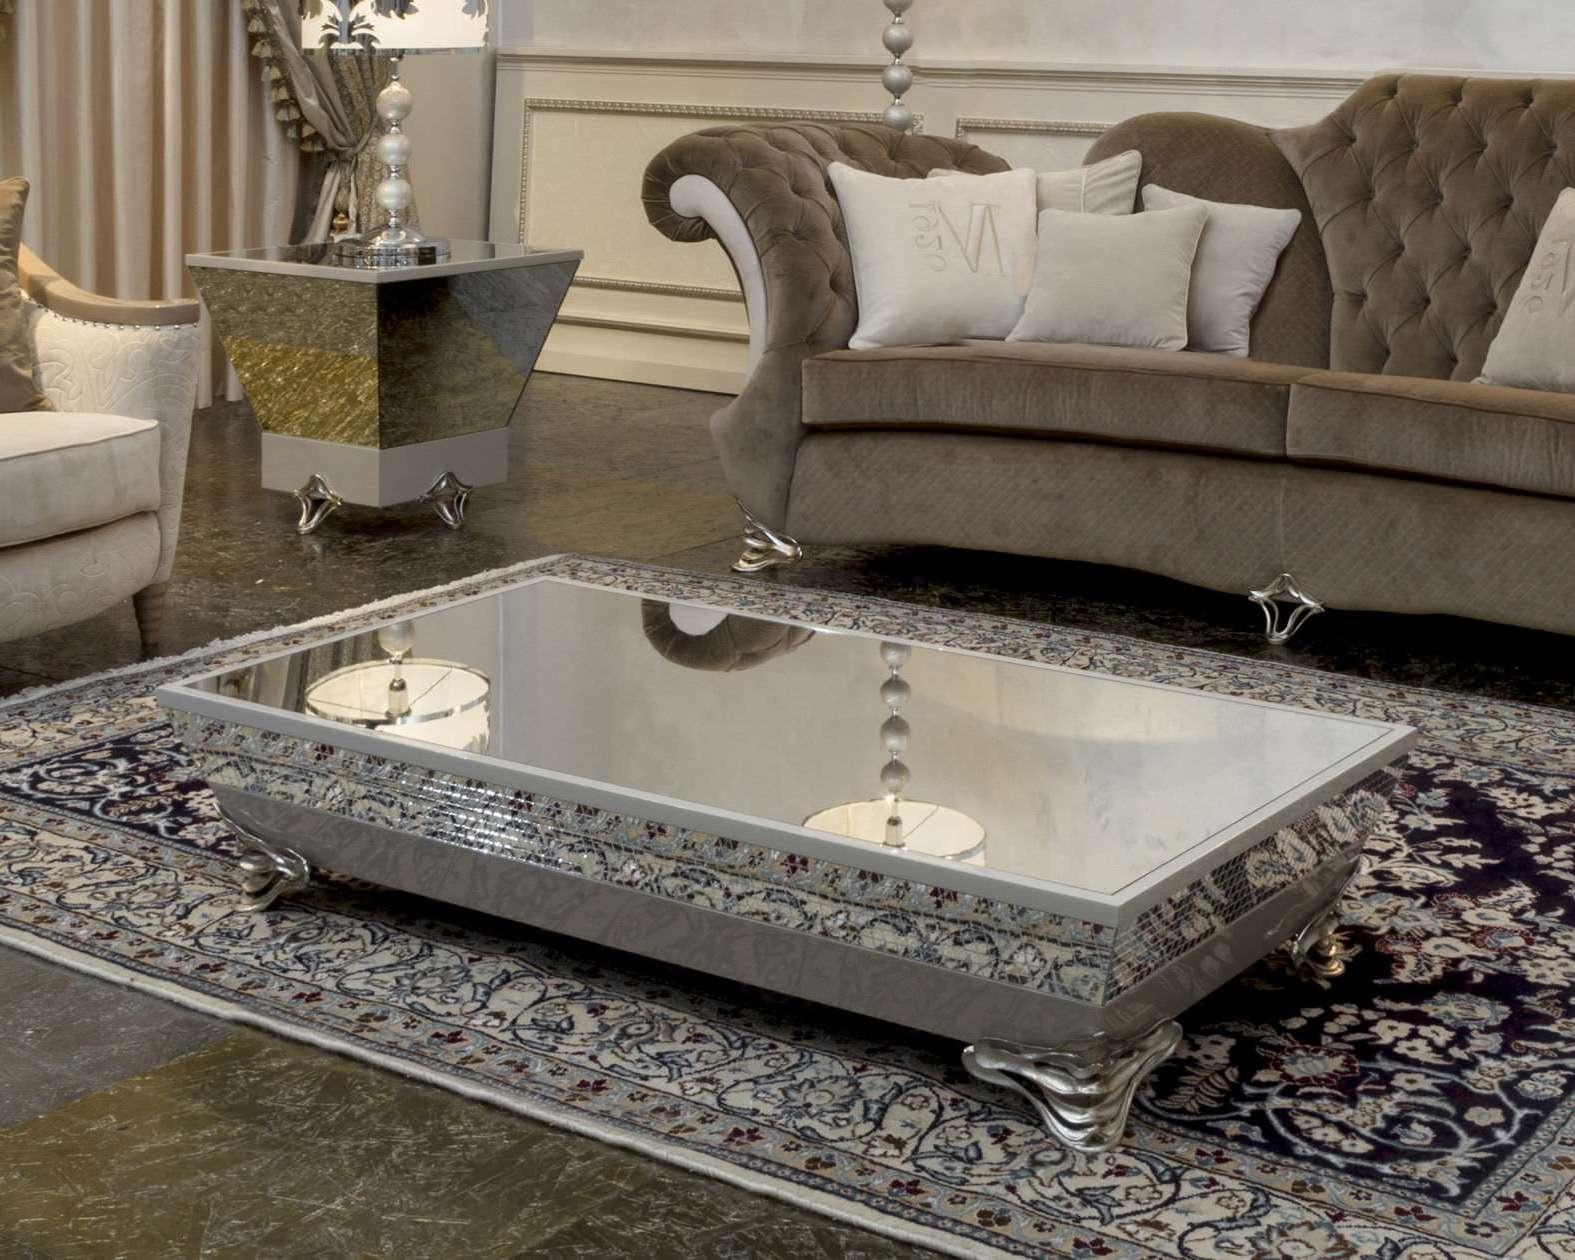 20 Ideas of Small Mirrored Coffee Tables